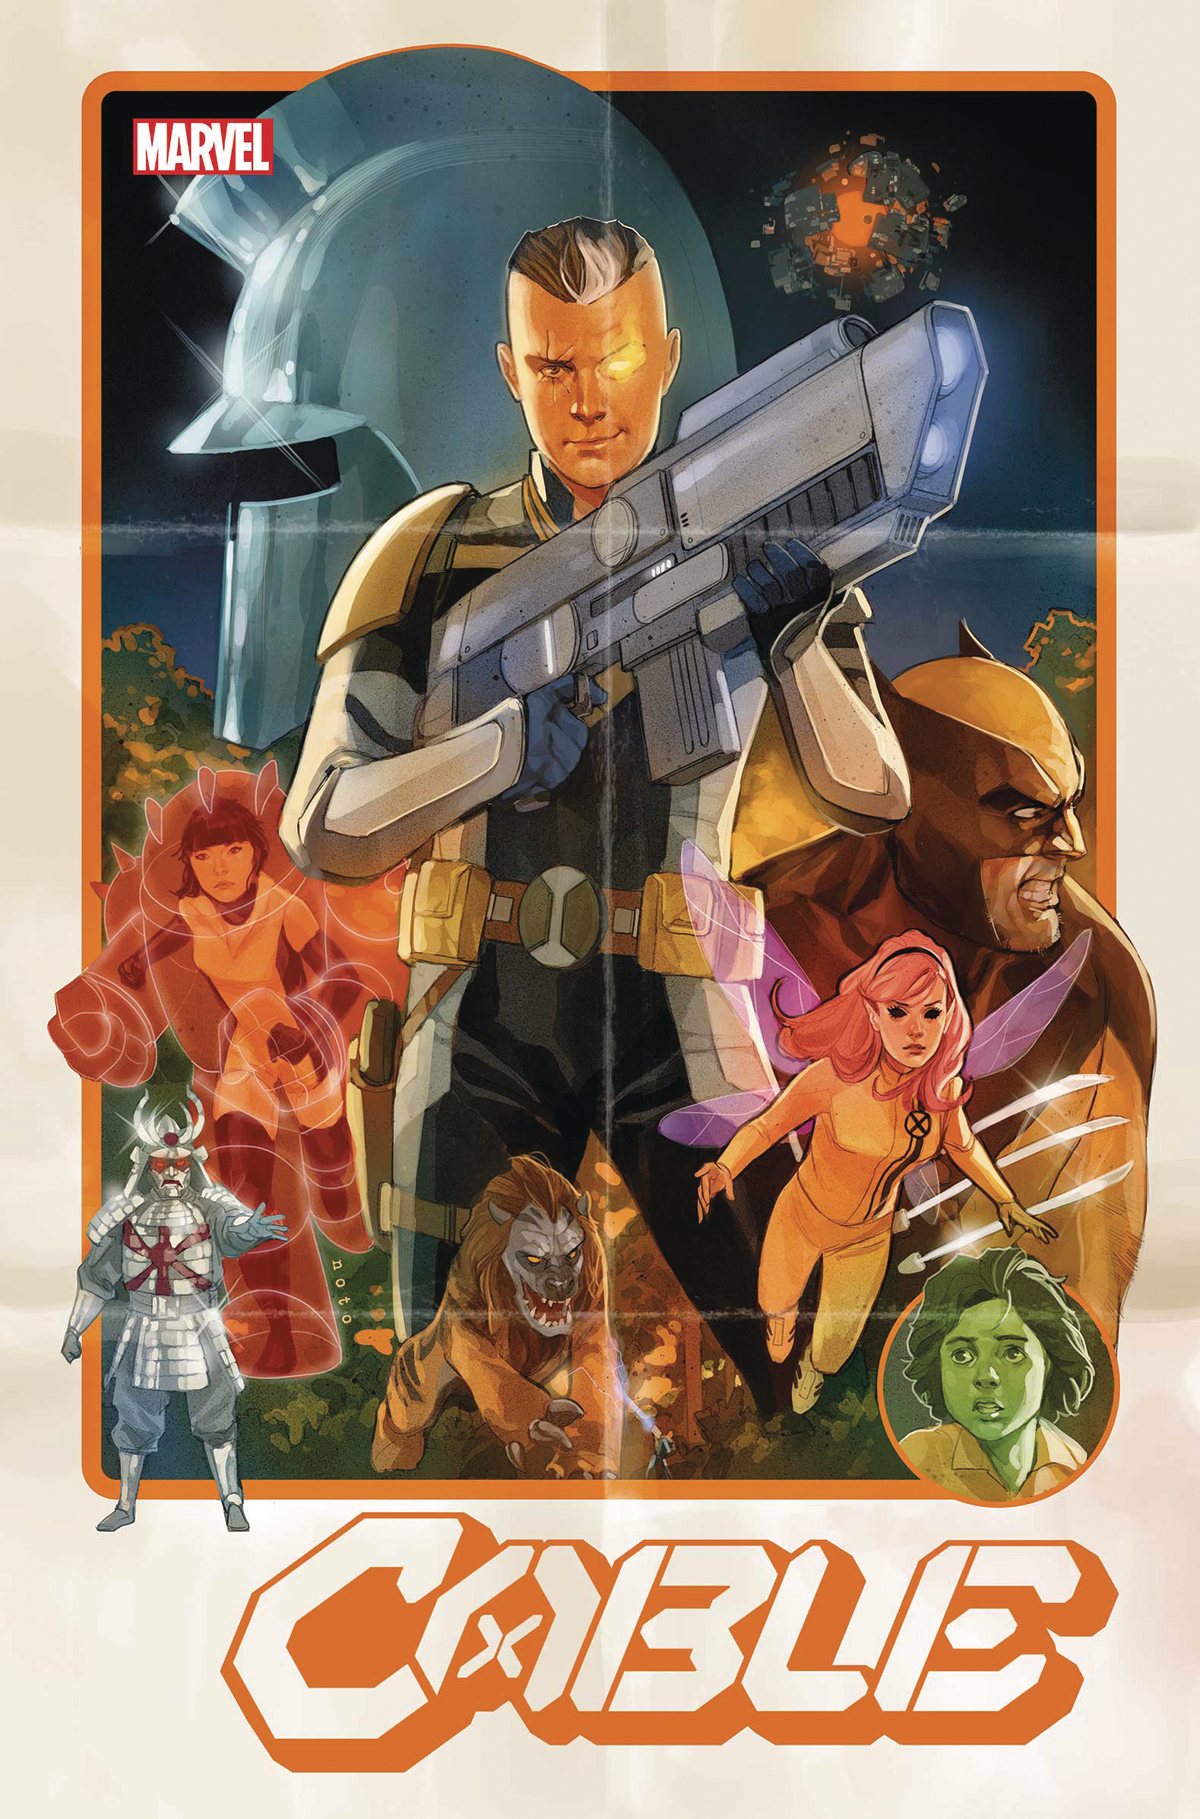 CABLE #1 POSTER